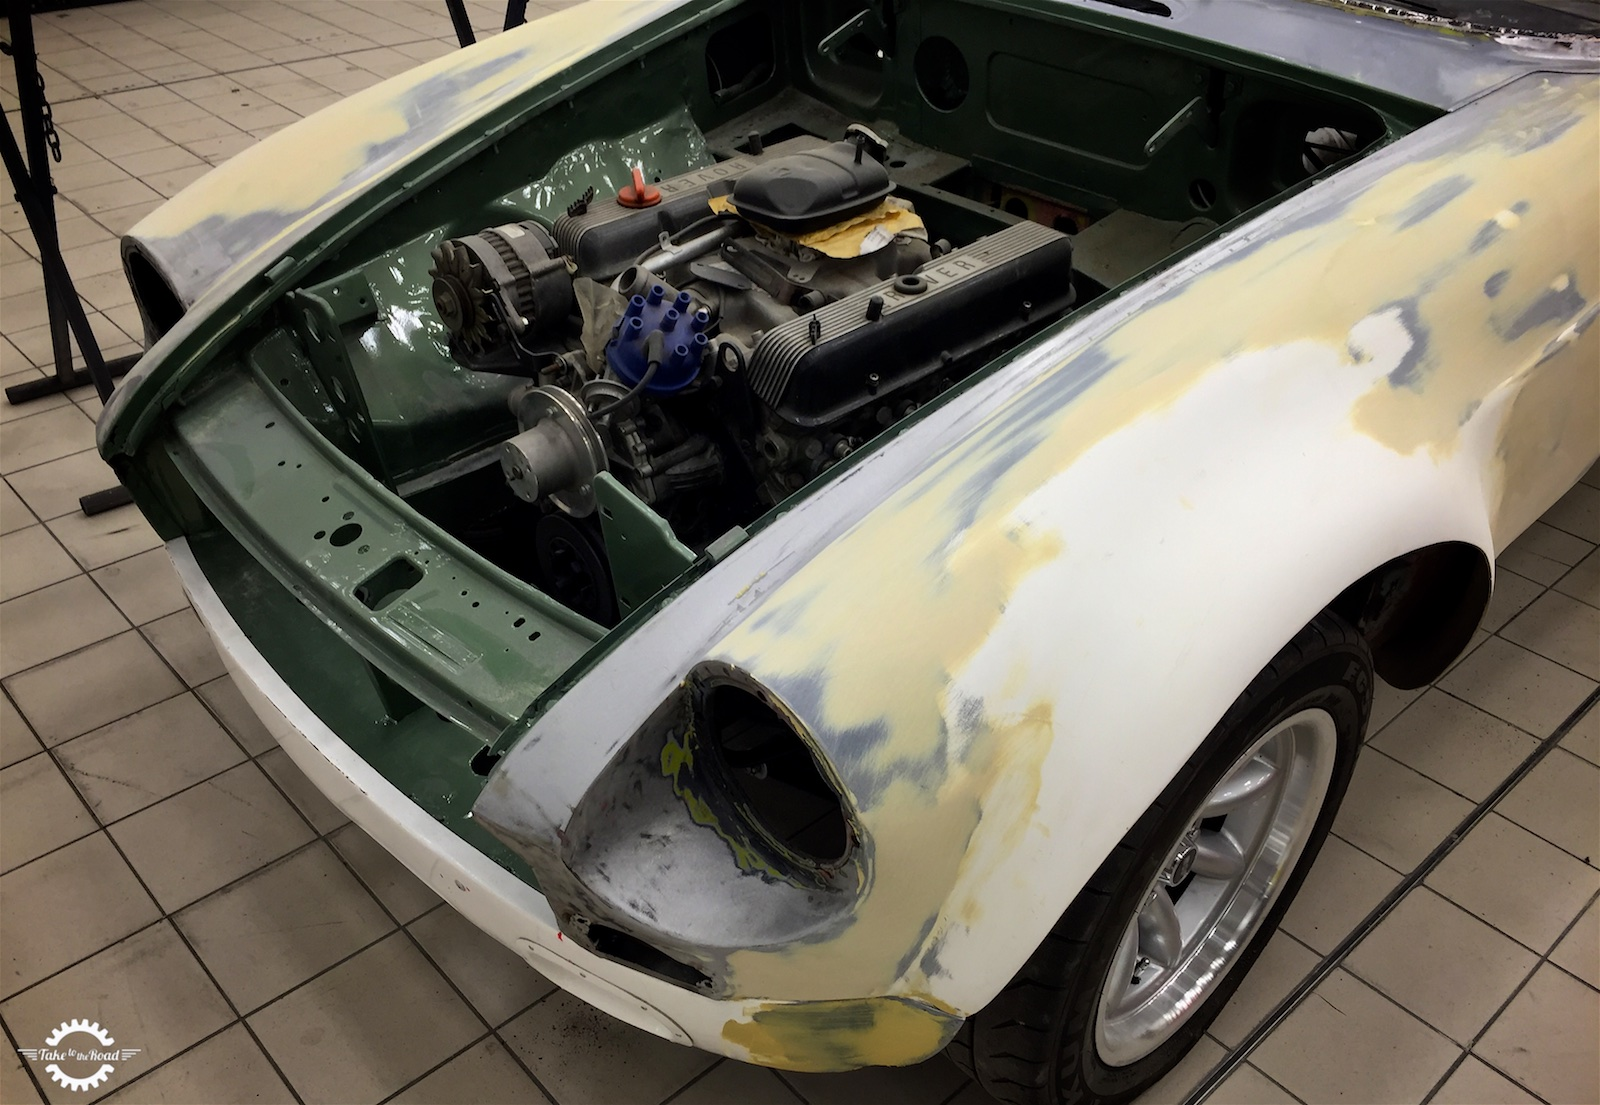 5 Things You Should Know Before Restoring A Classic Car